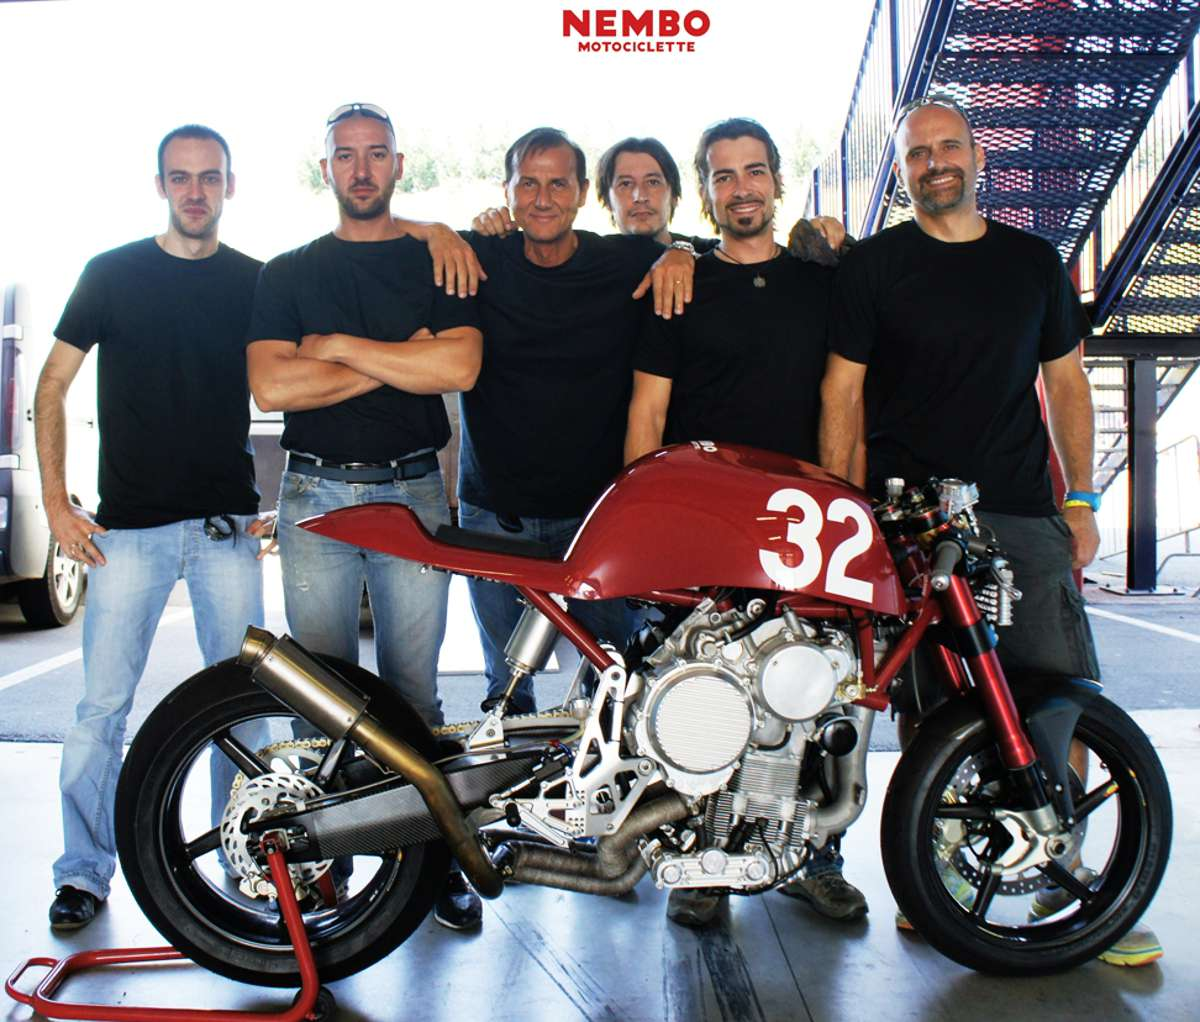 Nembo Motorcycle Team